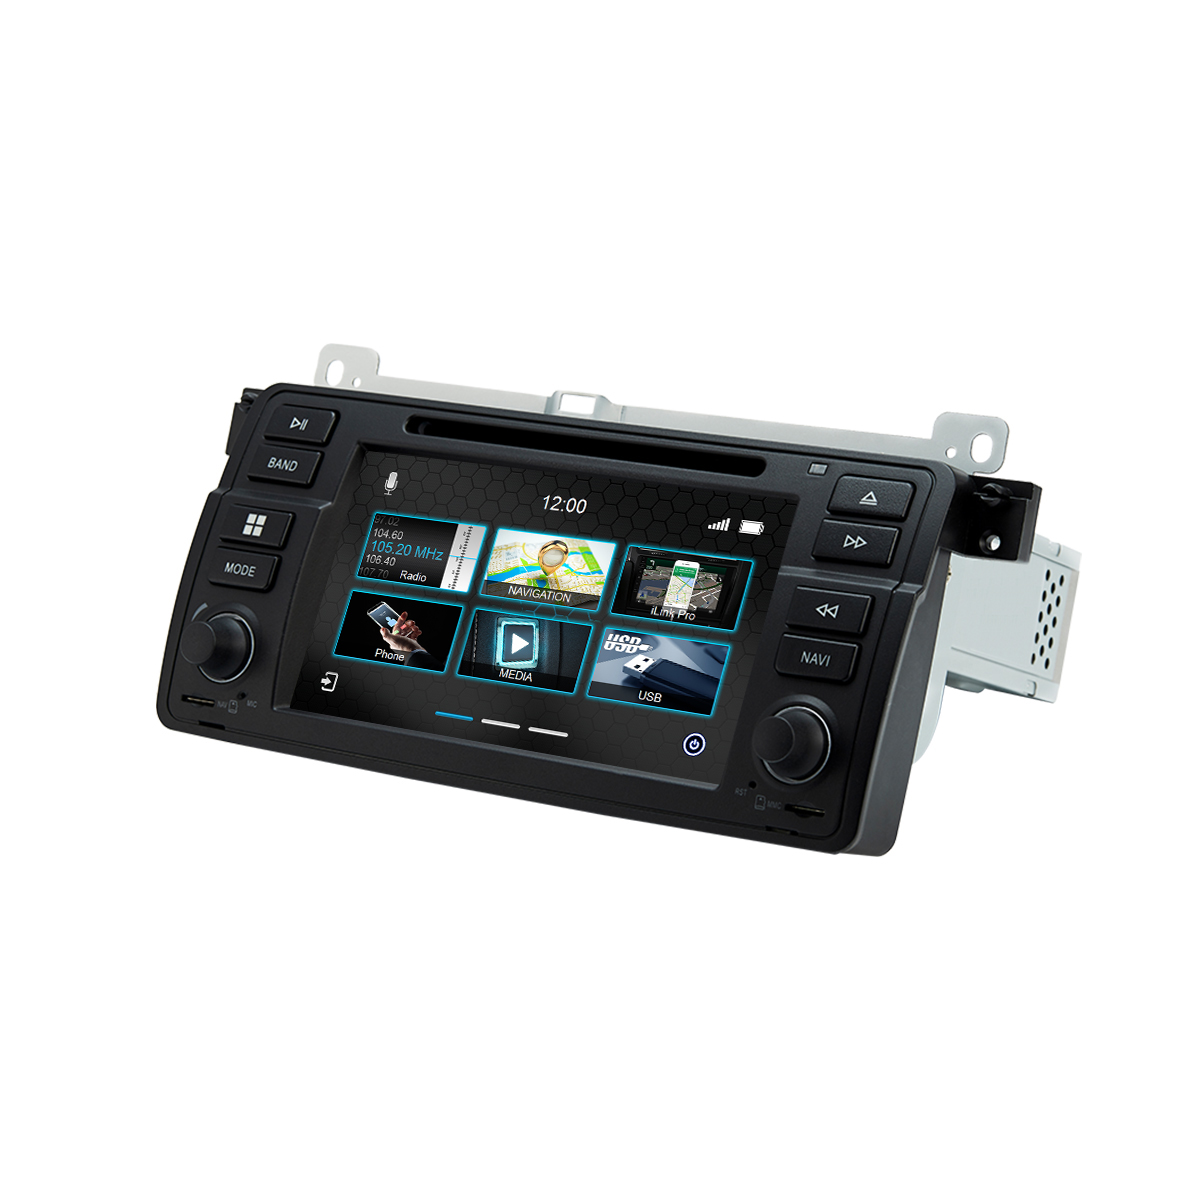 Dynavin DVN-E46 Pro Multimedia Navigation N7 Plattform für BMW 3er (E46) 05/1998 - 02/2007 + Navigationssoftware